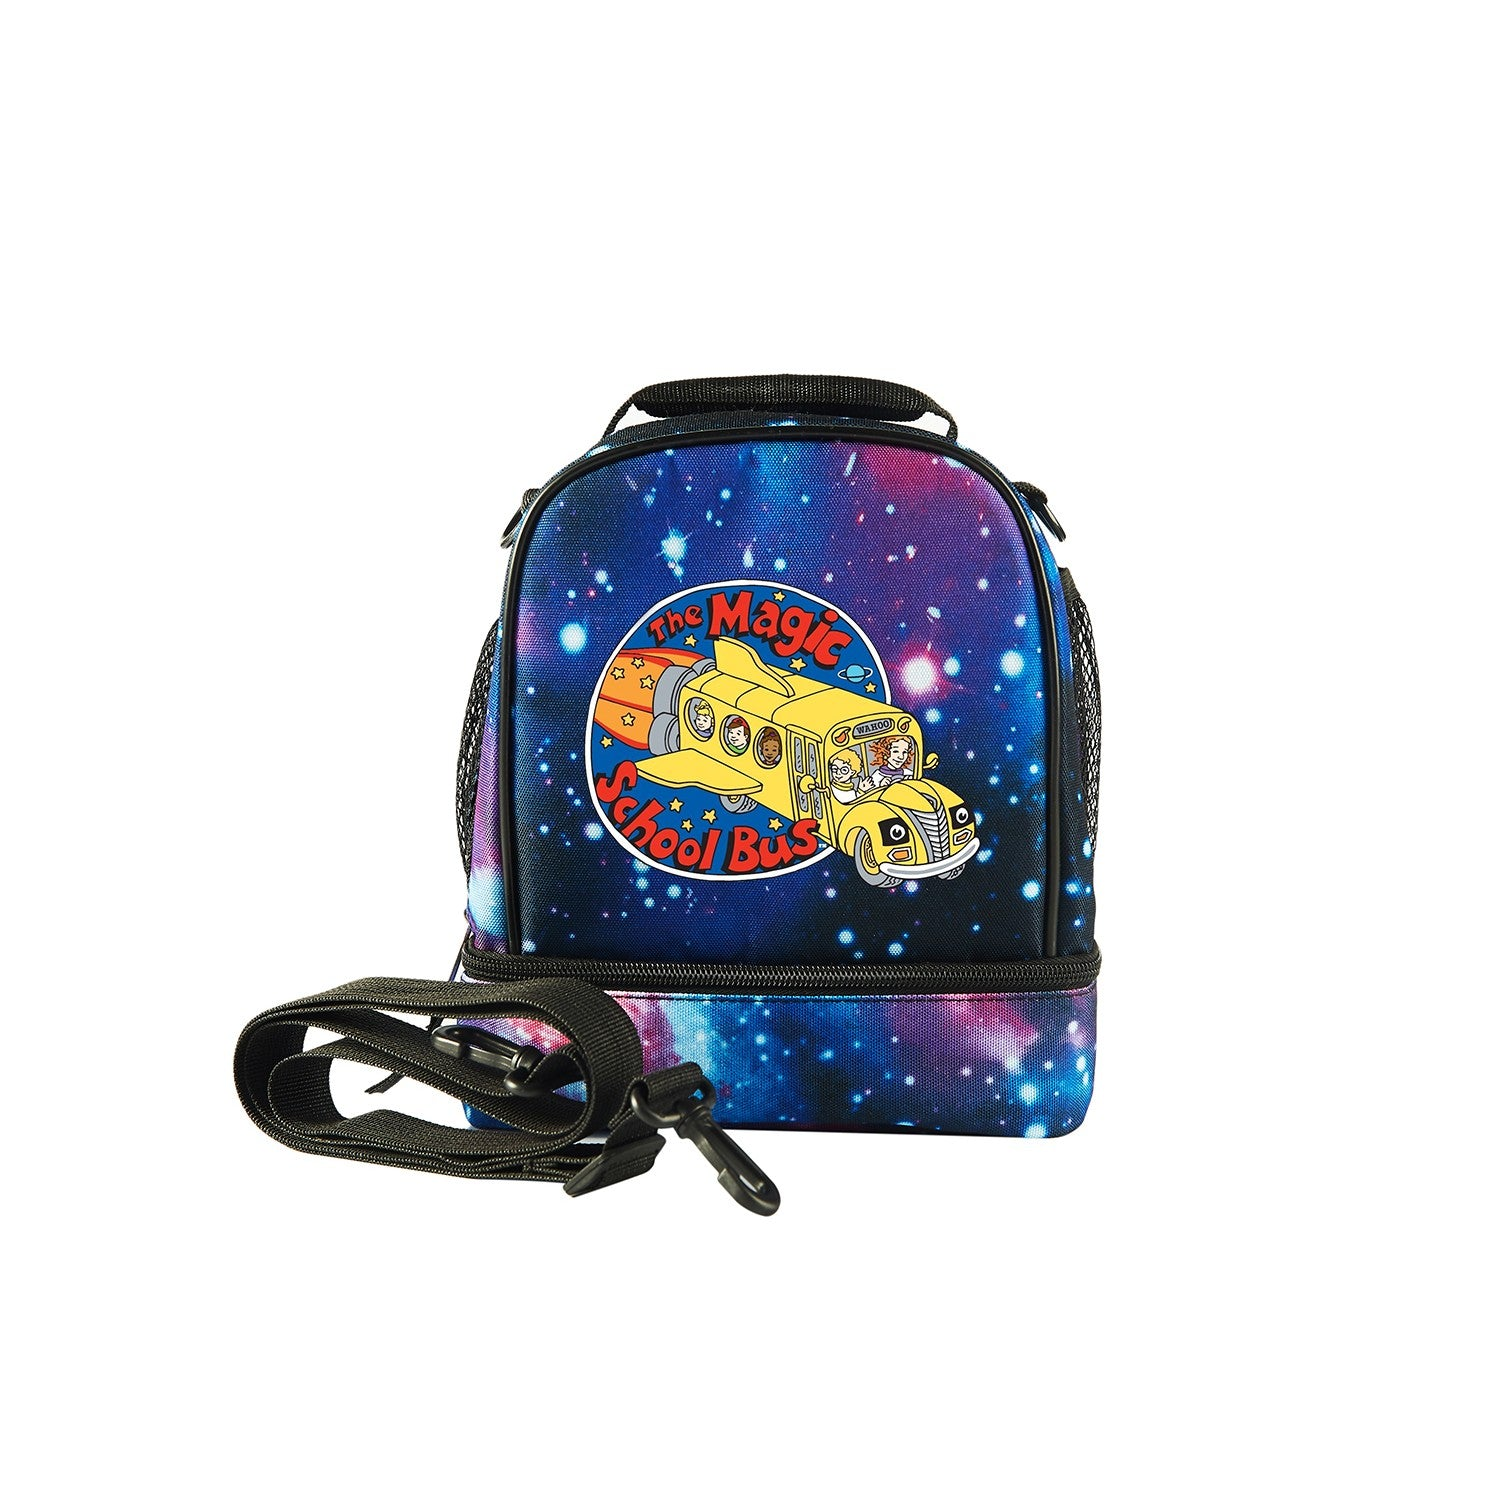 2019 The Magic School Bus Logo Fashion Two Compartment Foldable Lunch Bag